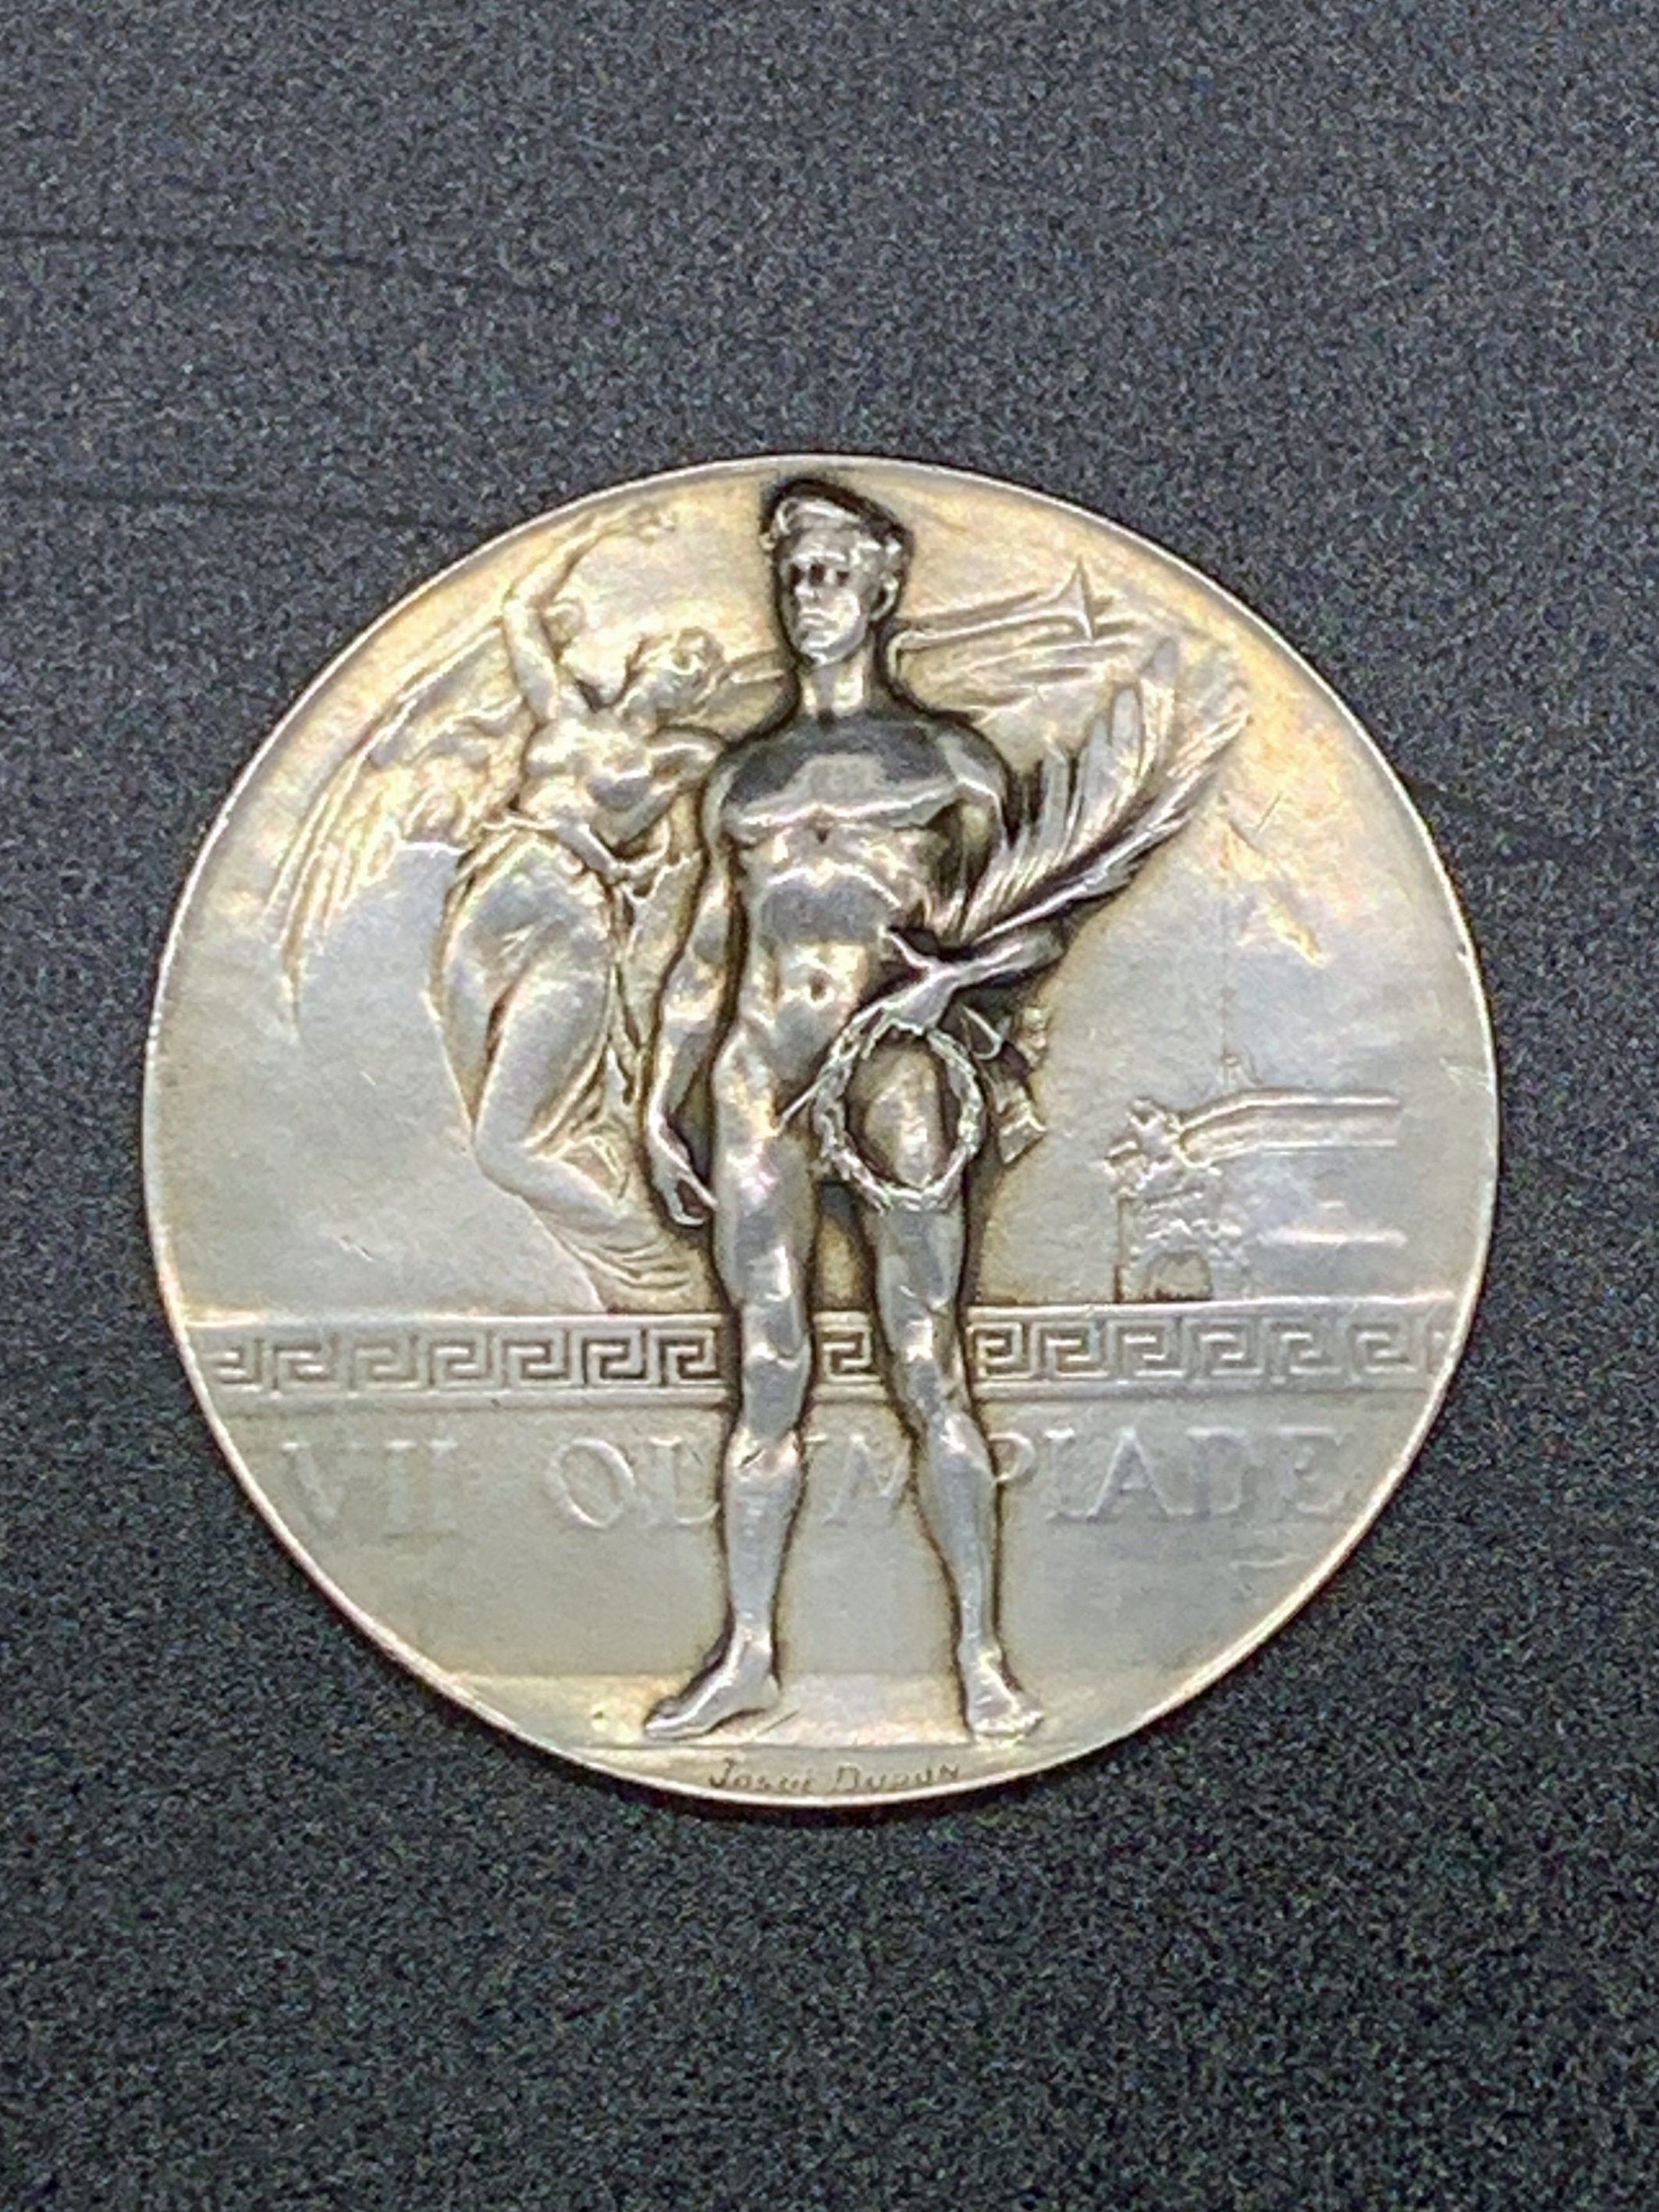 Gold medal Antwerp 1920 front